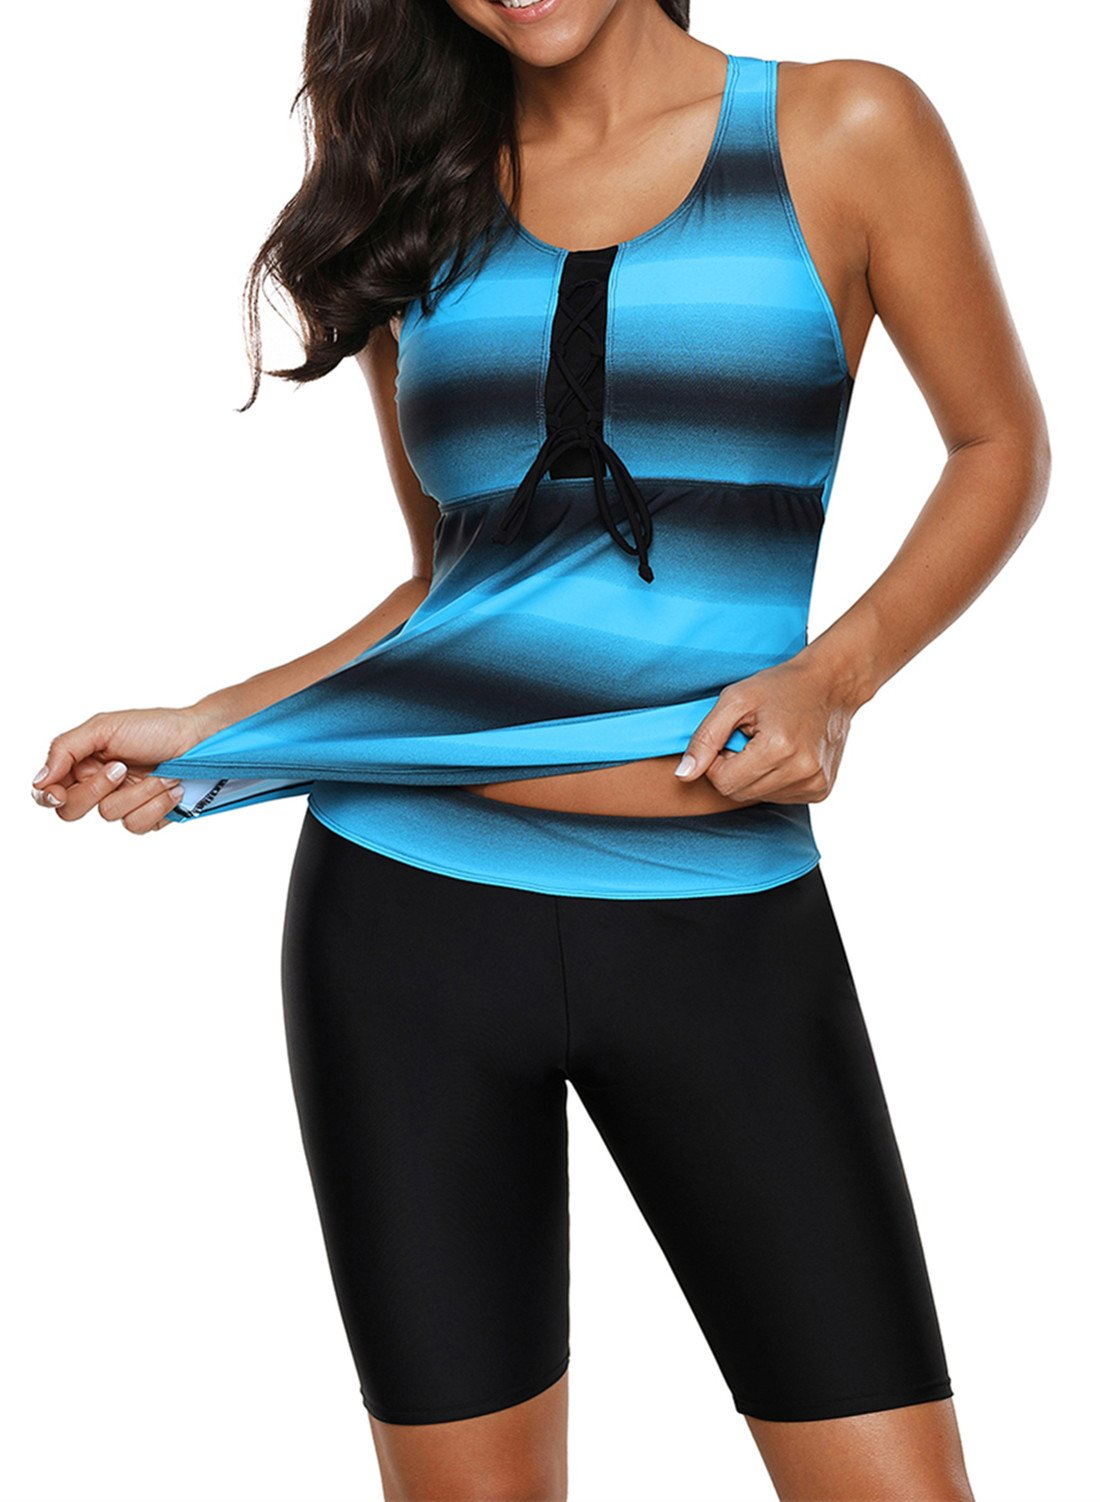 Aleumdr Womens Racerback Color Block Tankini Top with Swimsuit Bottom Swimsuit Swimwear Blue S 4 6